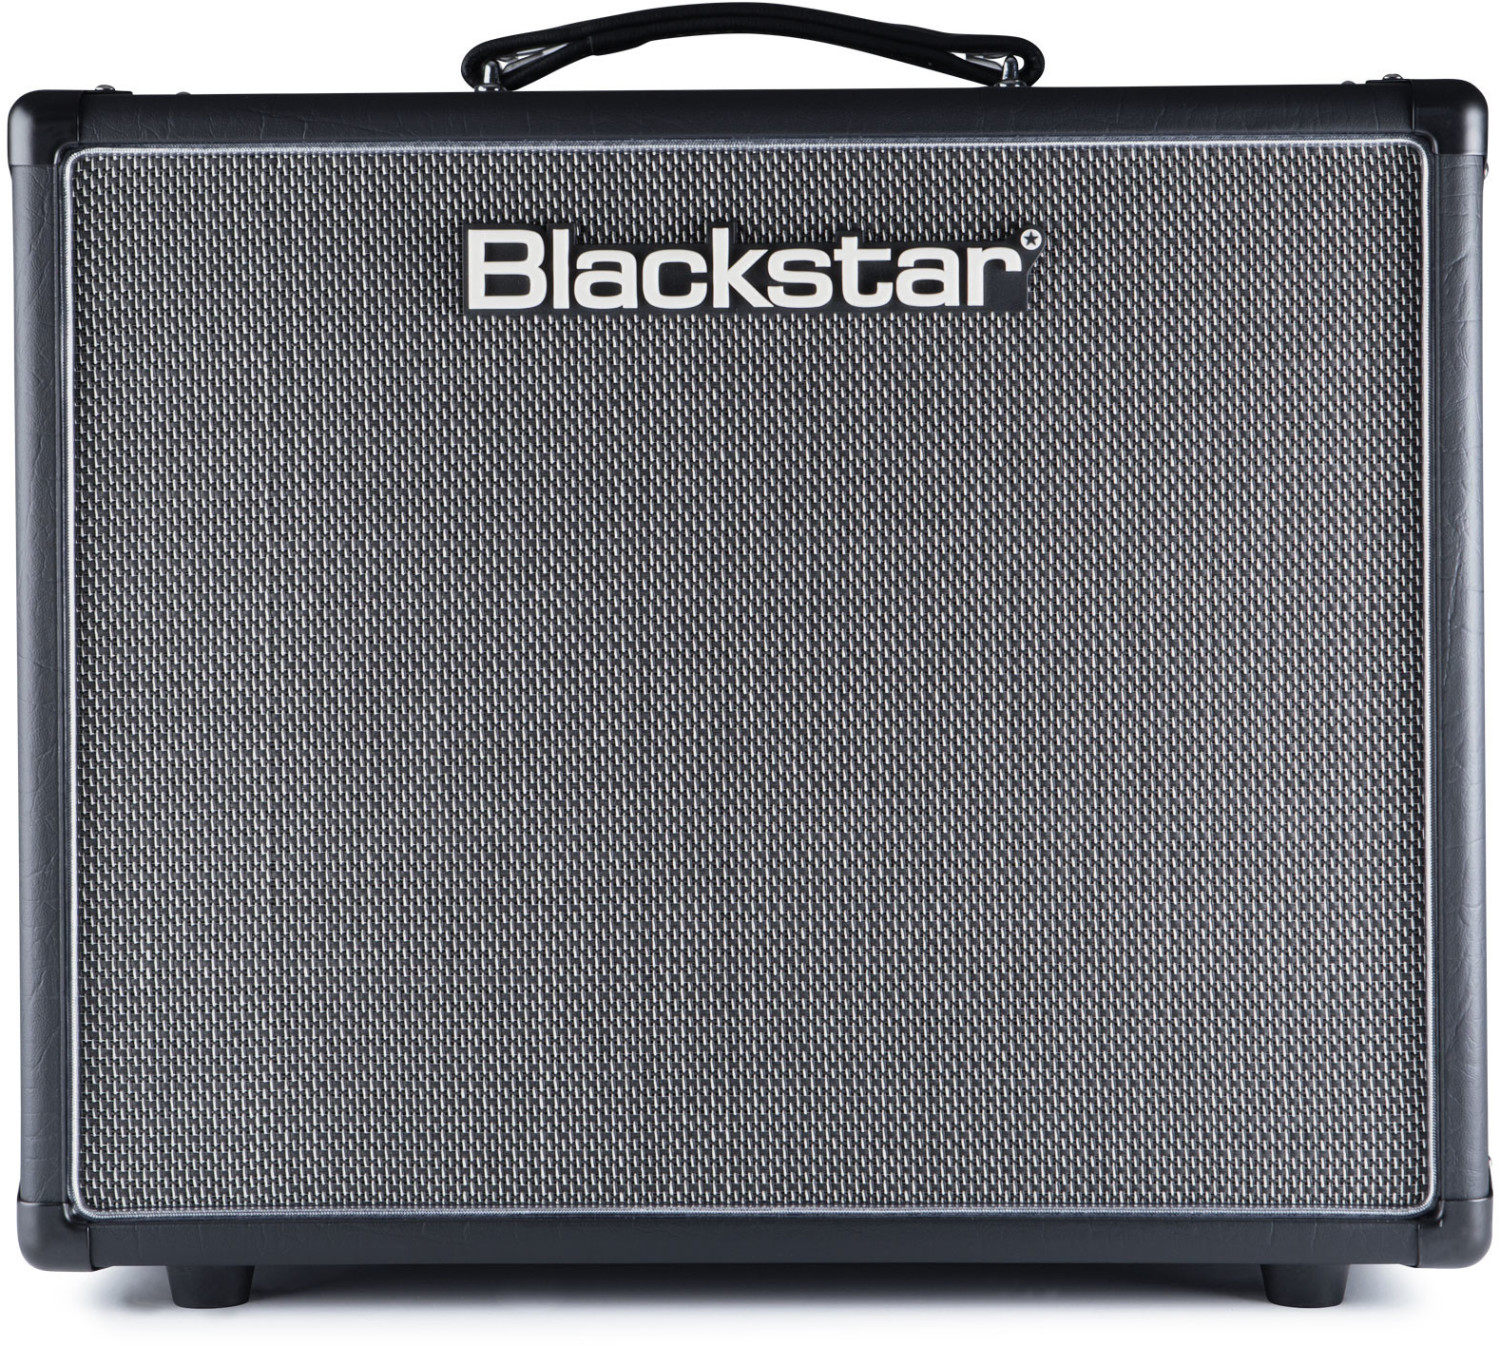 Image of Blackstar HT-20R MkII